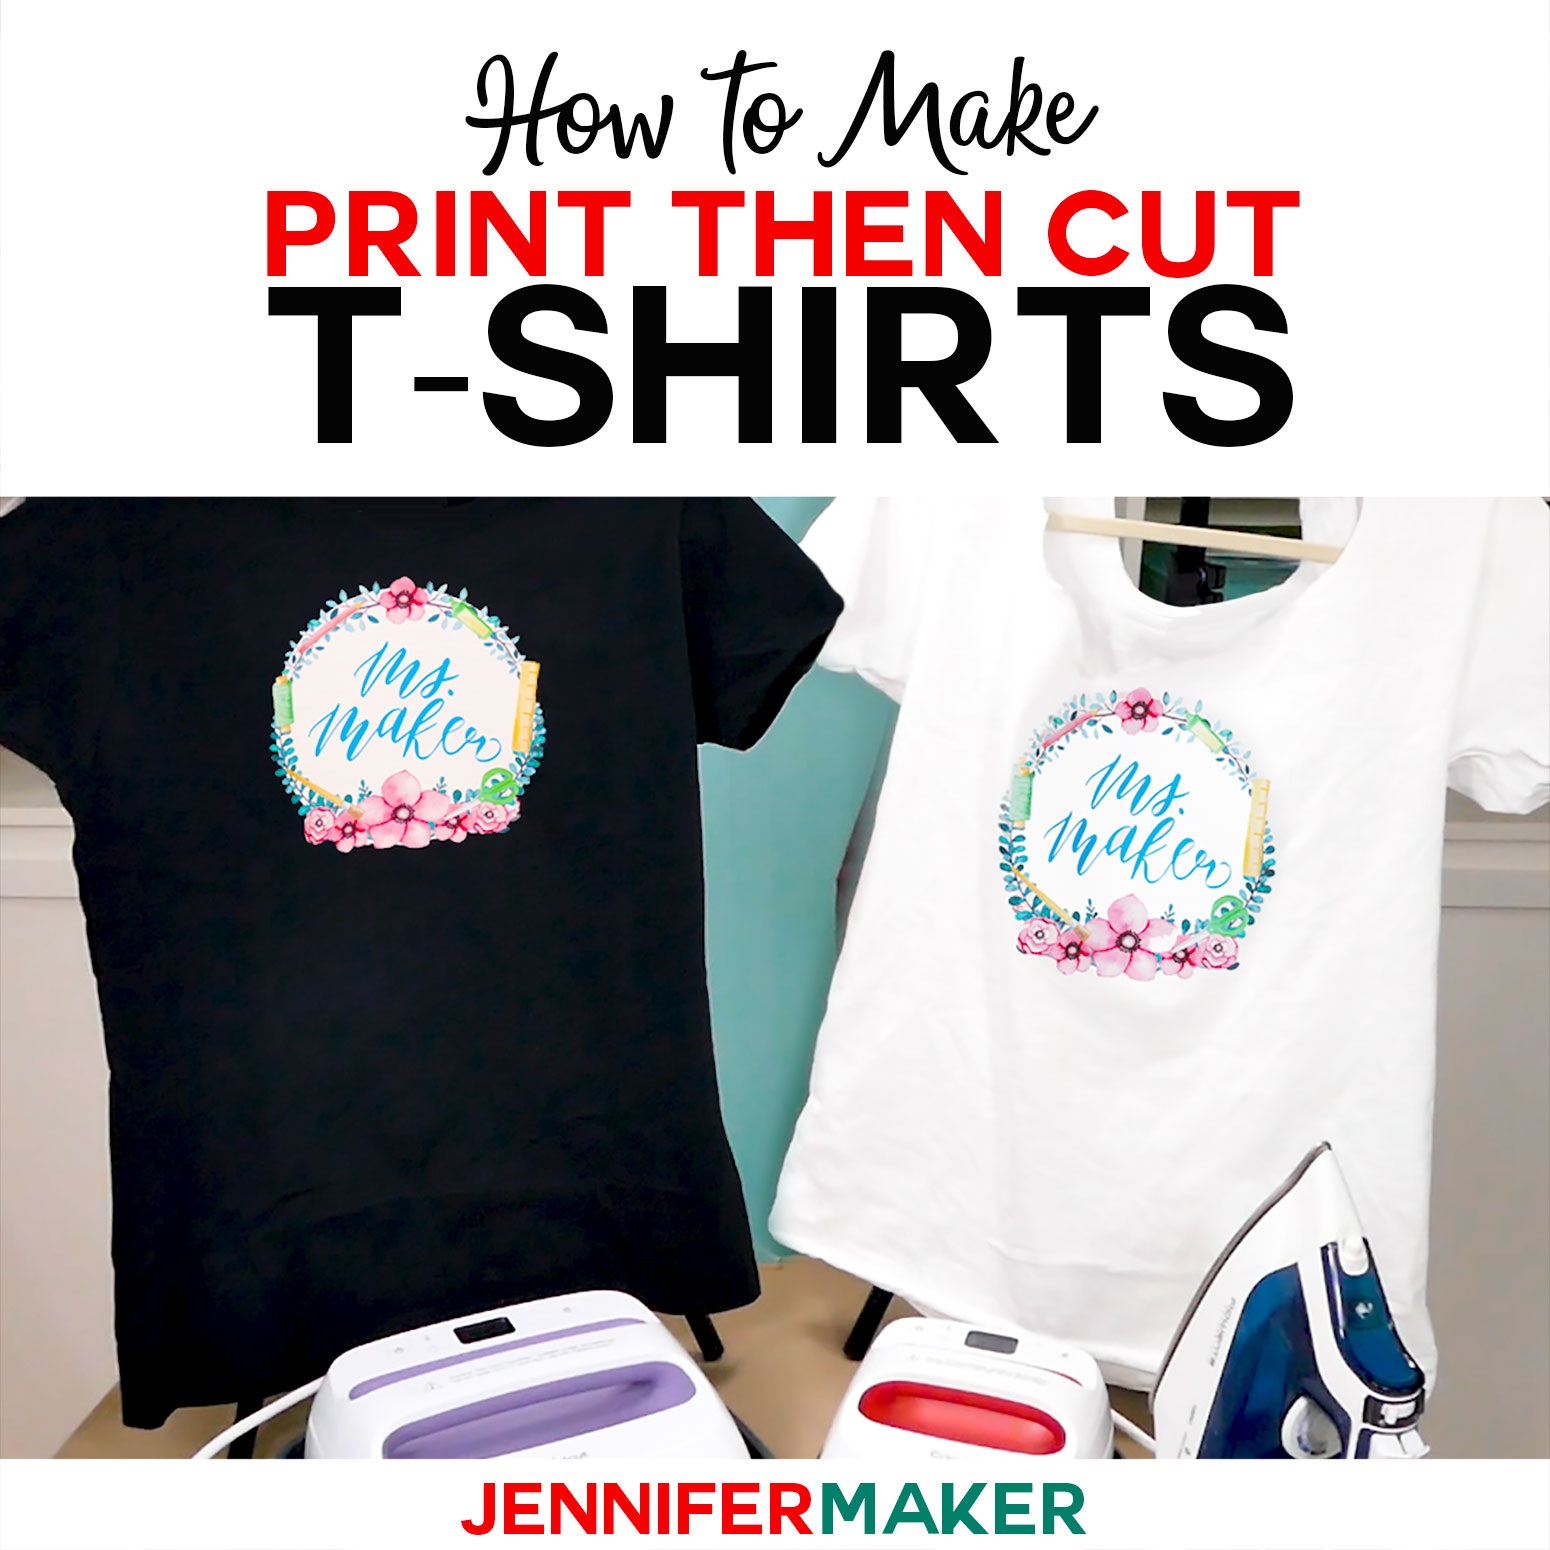 image about Printable Transfers referred to as Print Then Lower Cricut Move T-Shirts - Jennifer Manufacturer